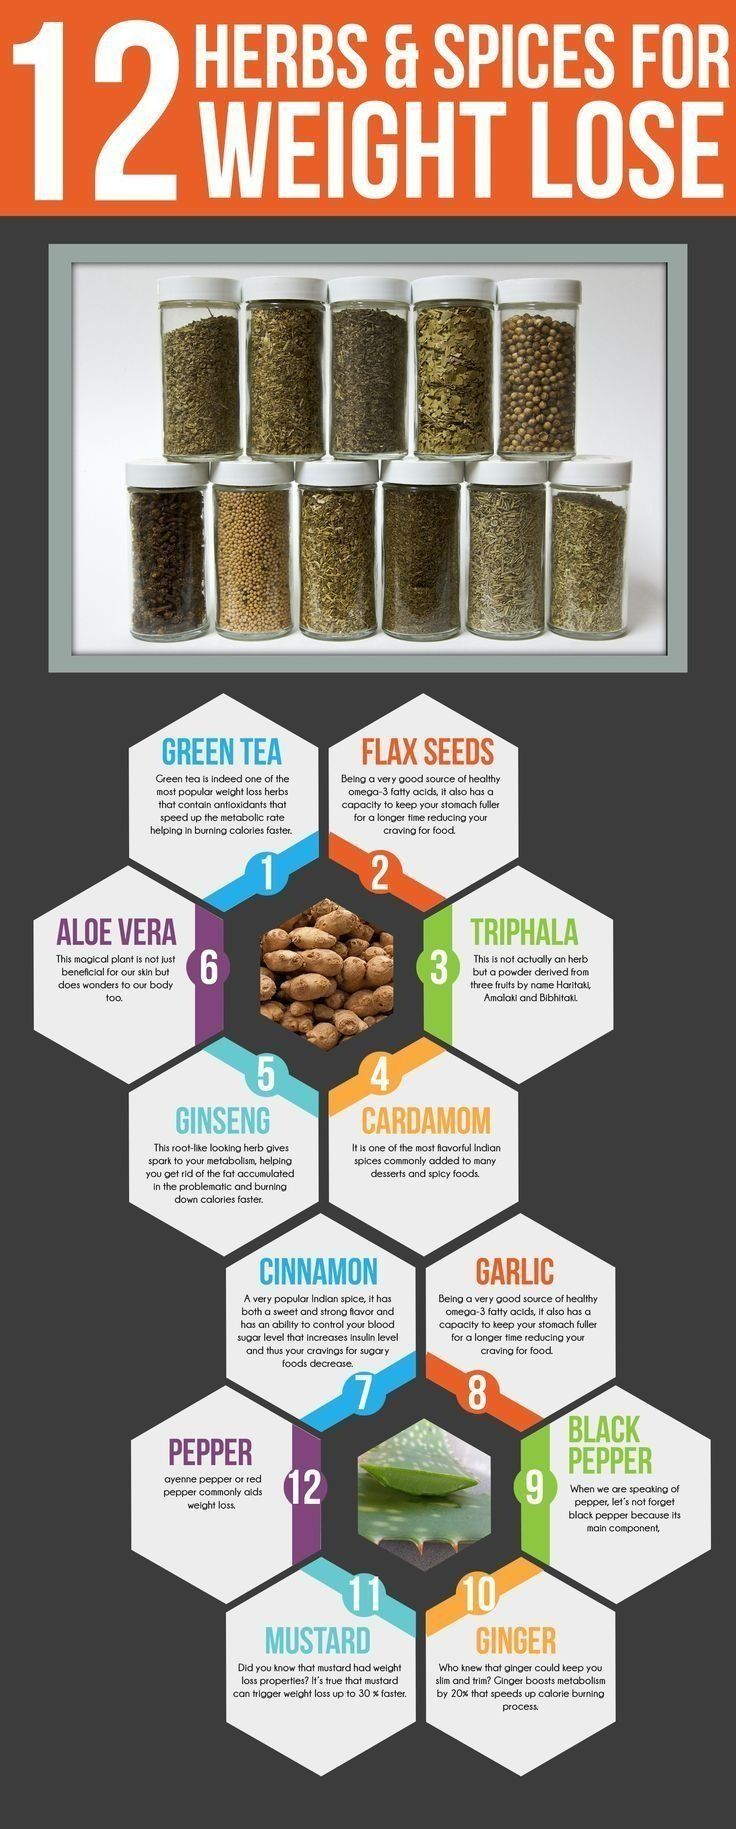 Herbs when included in diet work greatly for reducing weight. Know the 12 amazing herbs for weight loss and make sure to take in your diet. | Health.com